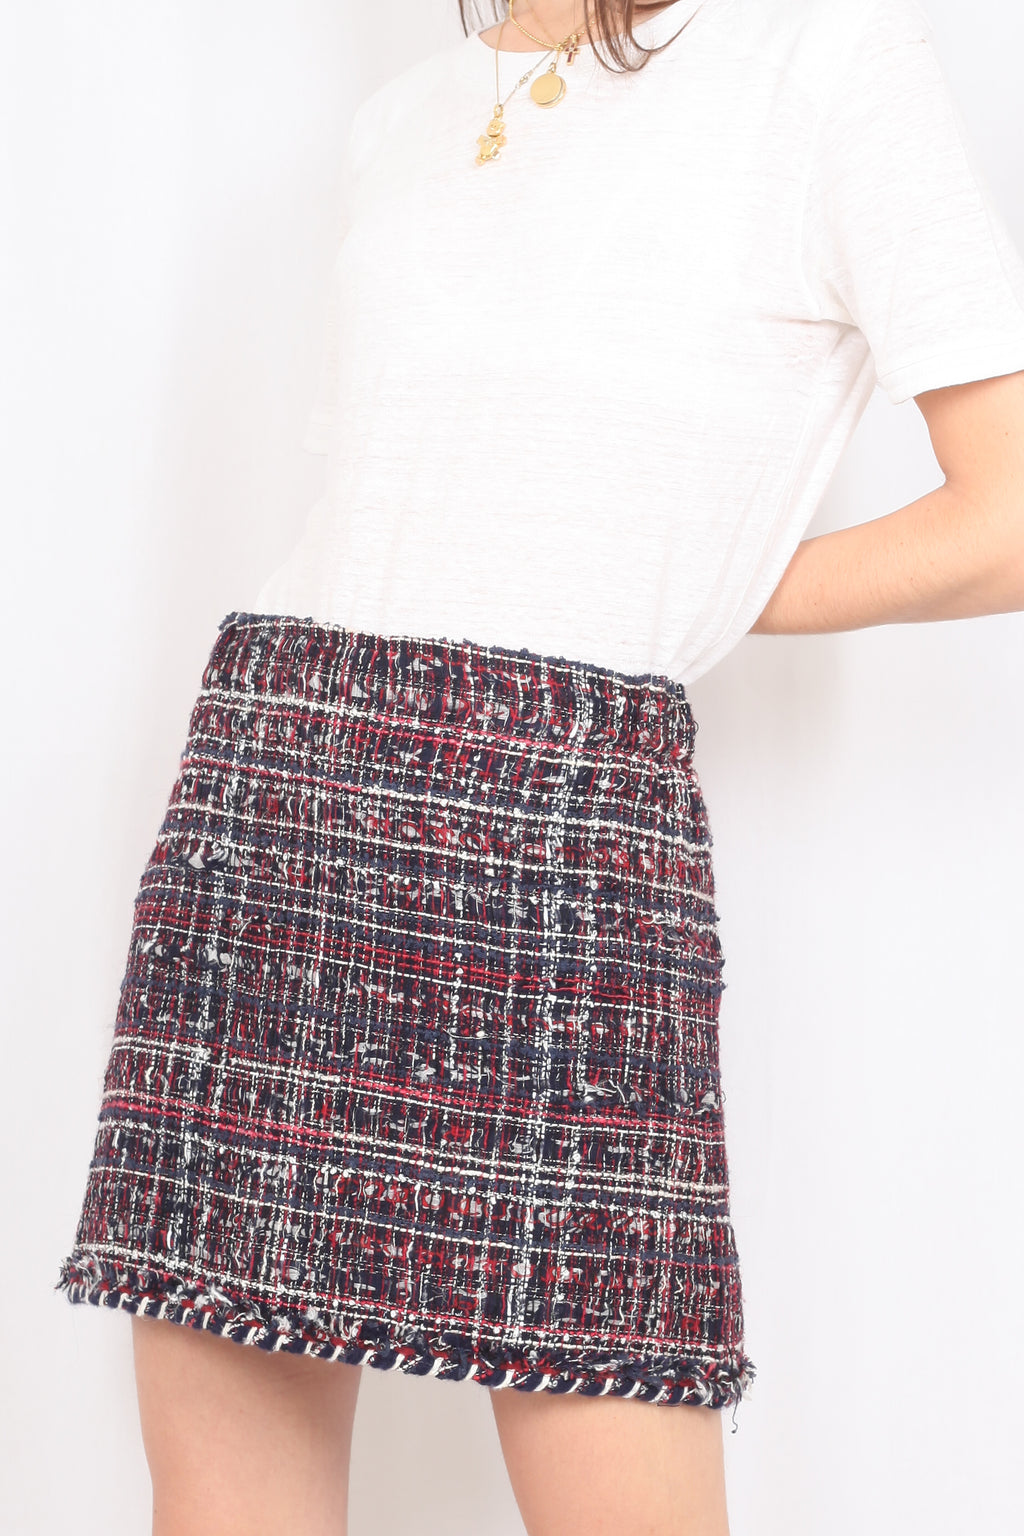 Chanel tweed skirt - L